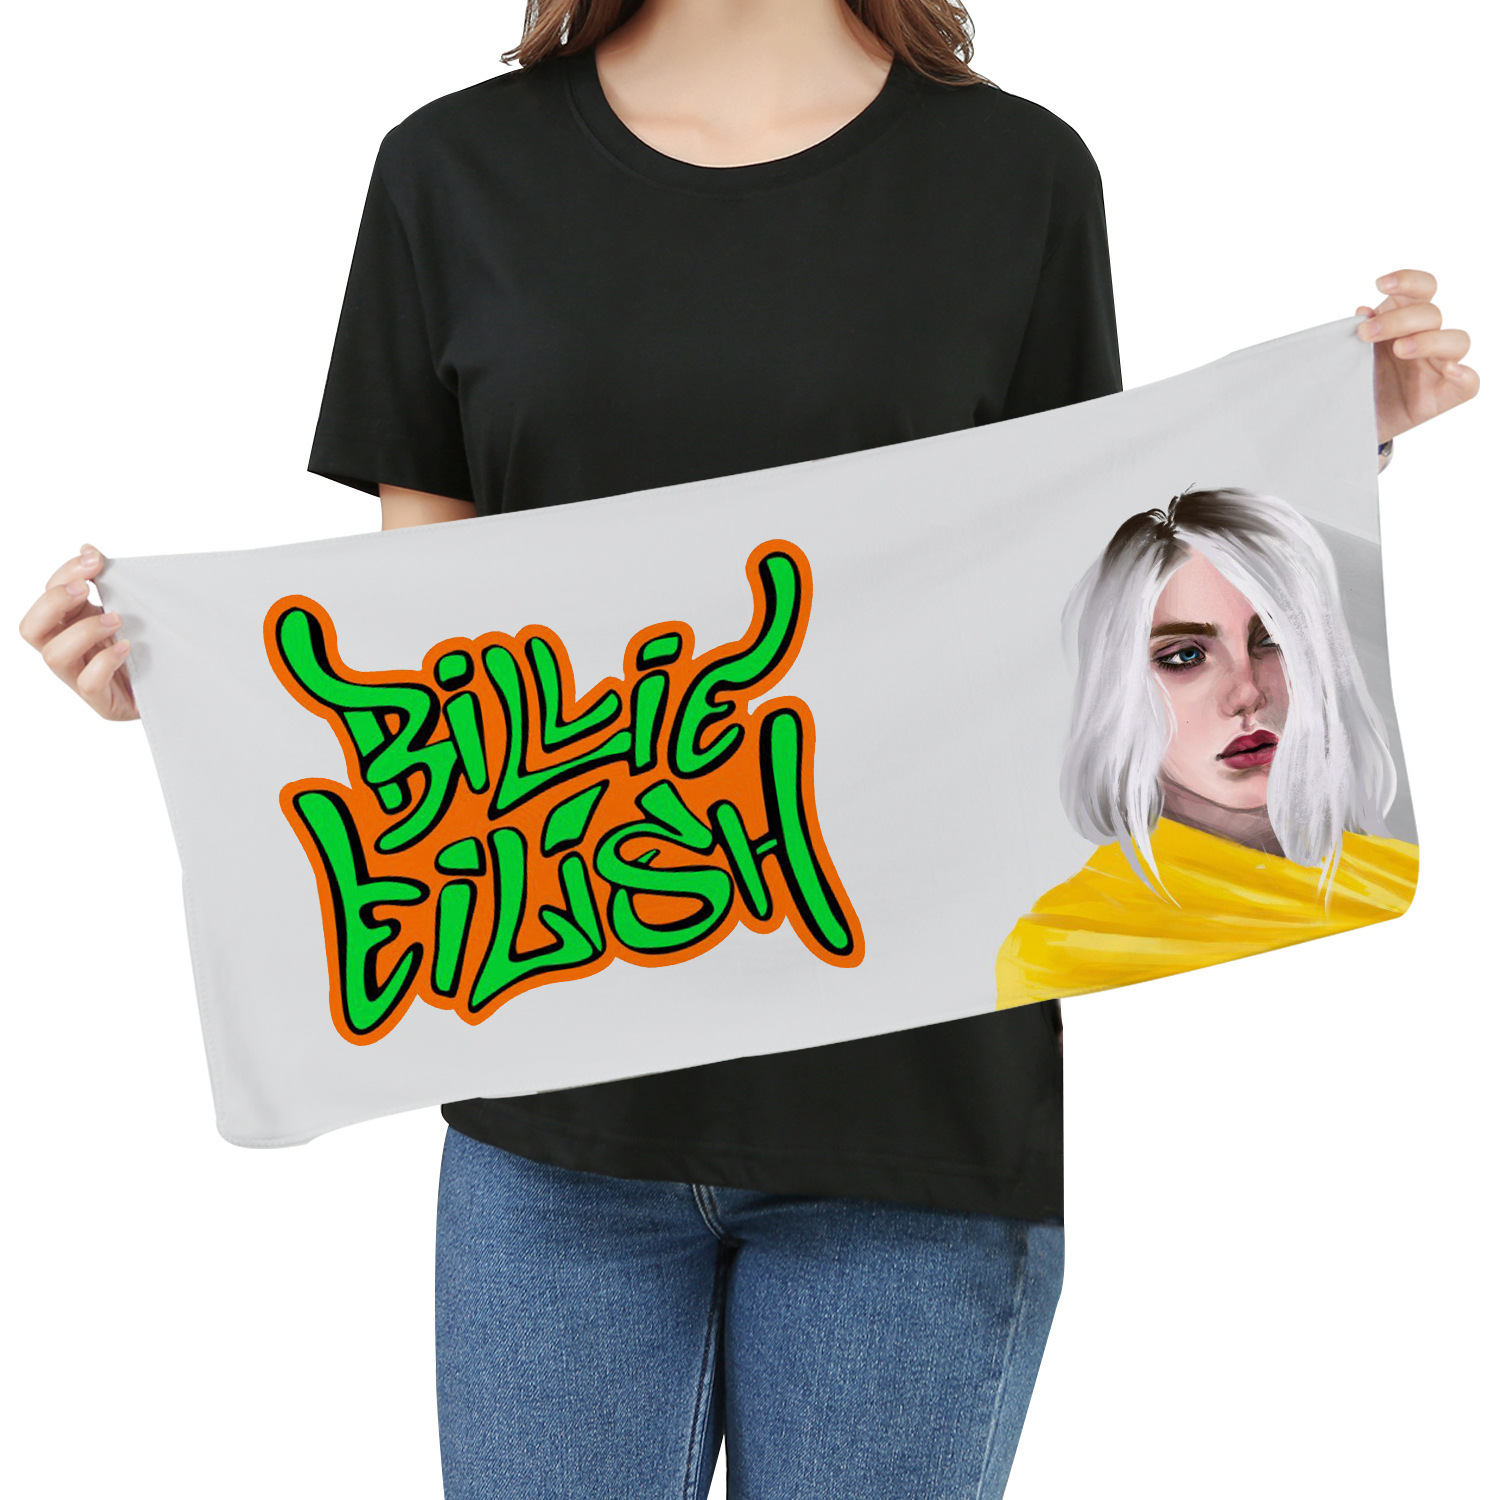 2019 Billie Eilish Towel Fans Respond To Aid Periphery Towel Wash One's Face A Piece Of Cloth Exceed Fine Fiber Banner Towel